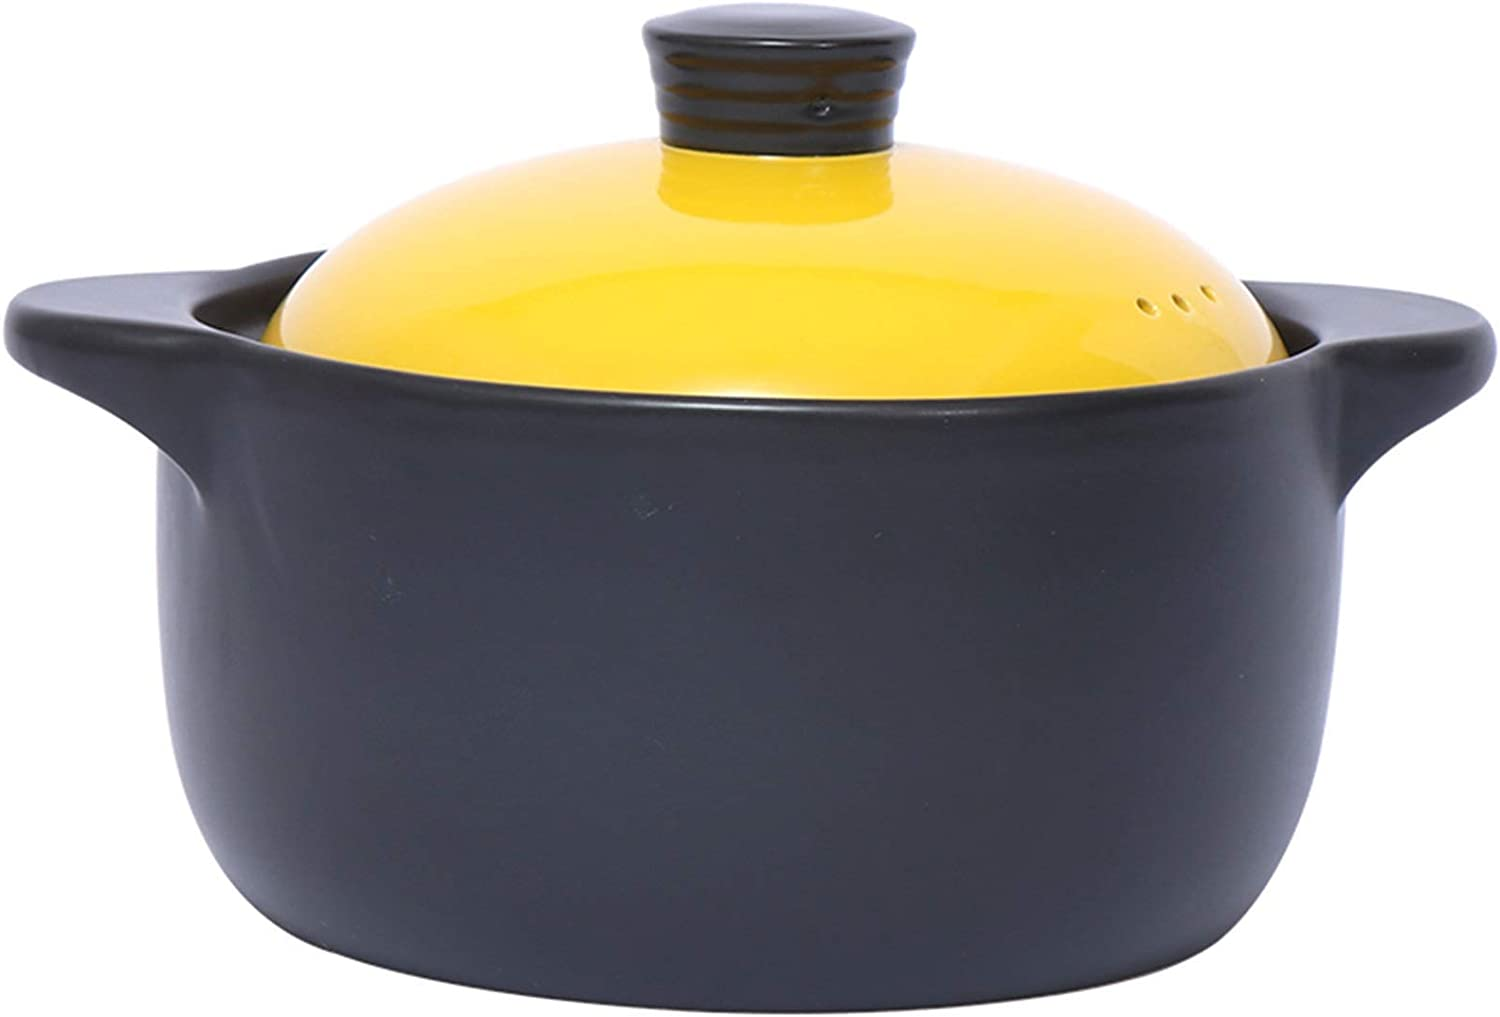 LIUSHI Casserole Cookware Hand Made Ceramic Pots for Cooking and Stew Casserole Slow Cooker (Color : Yellow, Size : 2.0L)